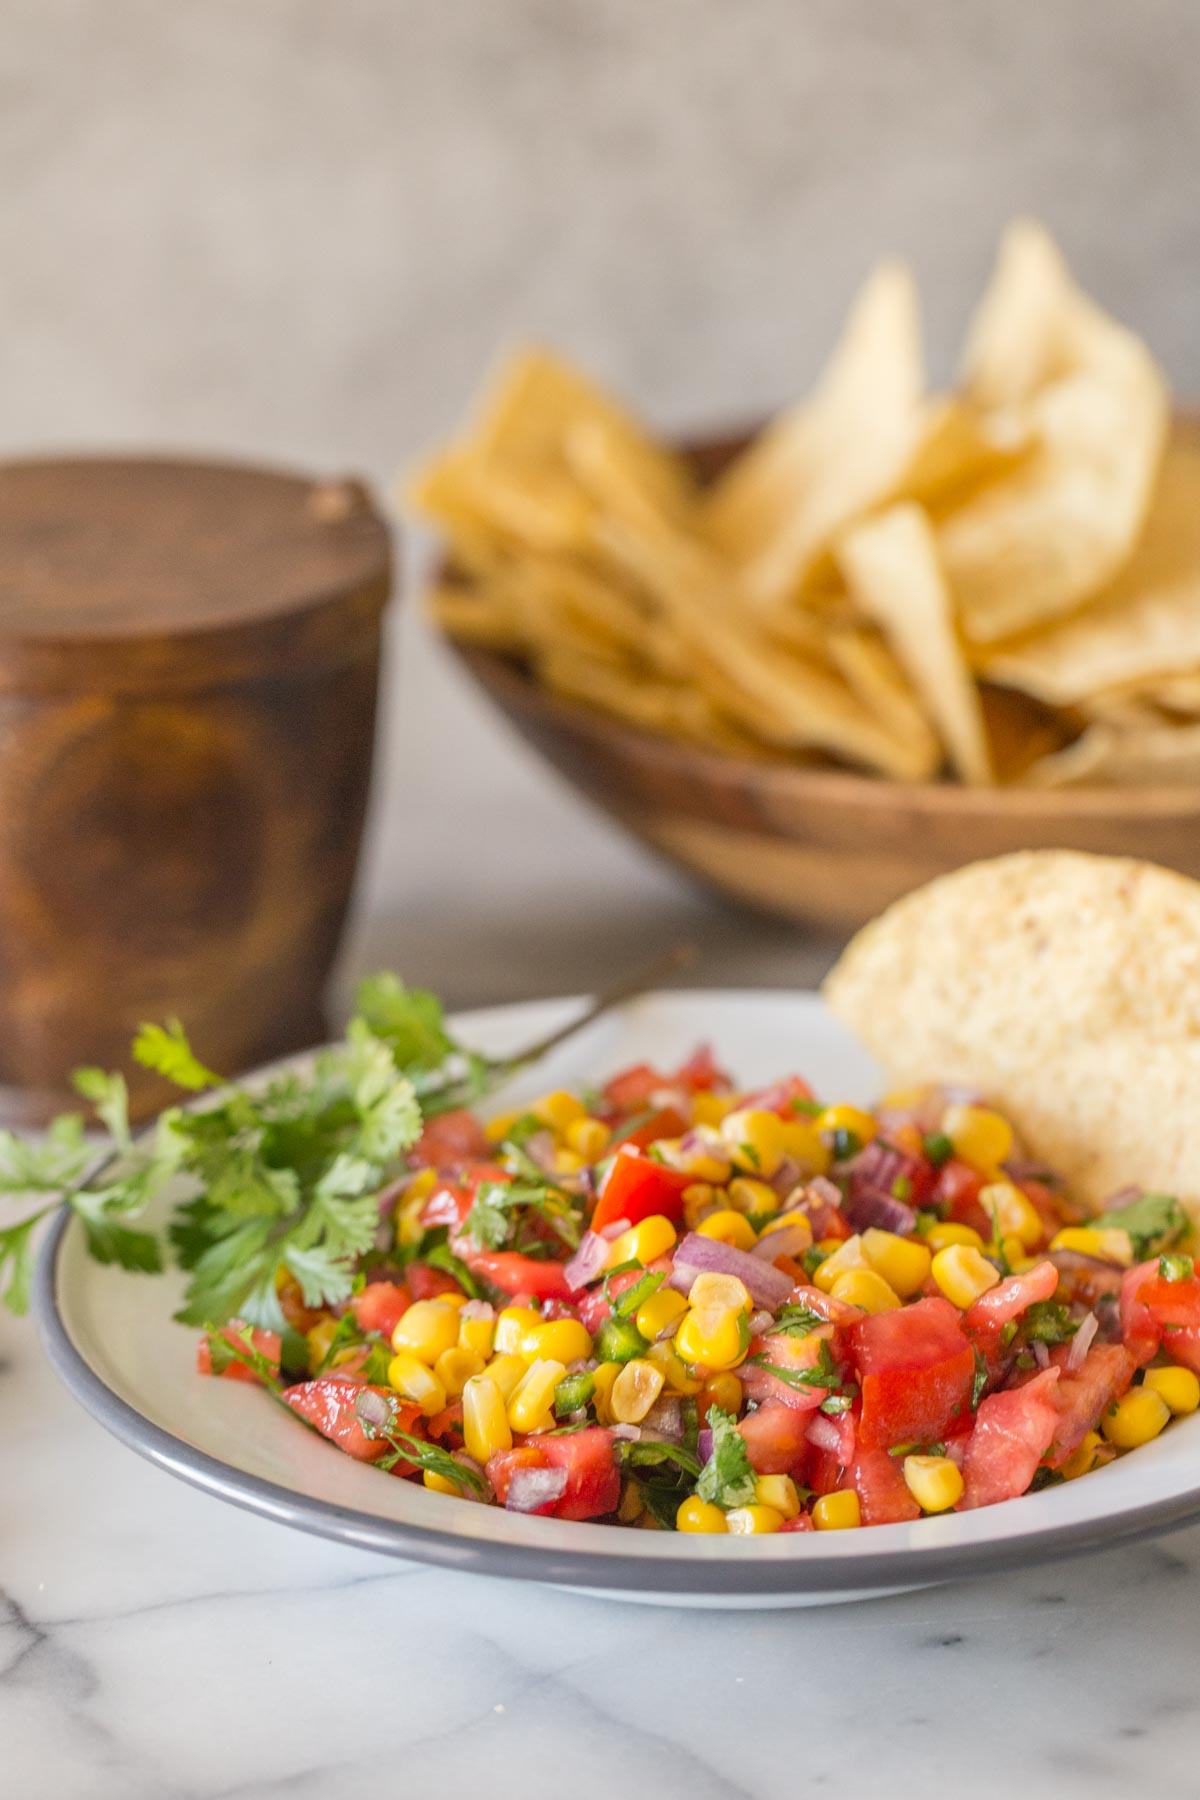 Close up of Homemade Pico de Gallo in a white bowl with chips.